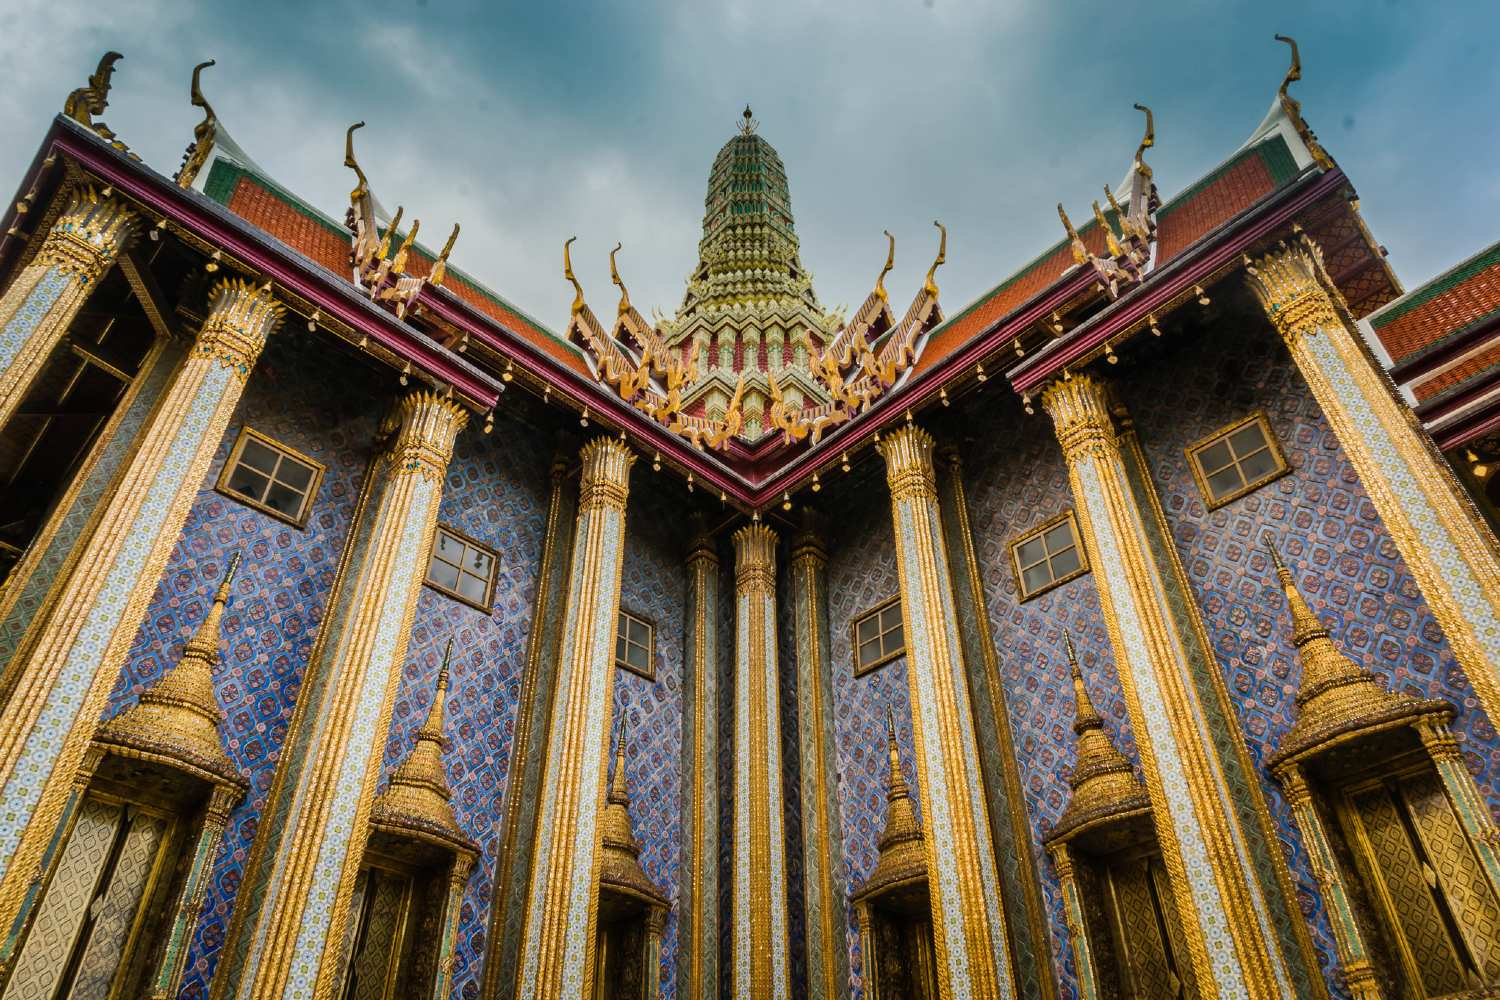 The Wat Phra Kaew photographed from below